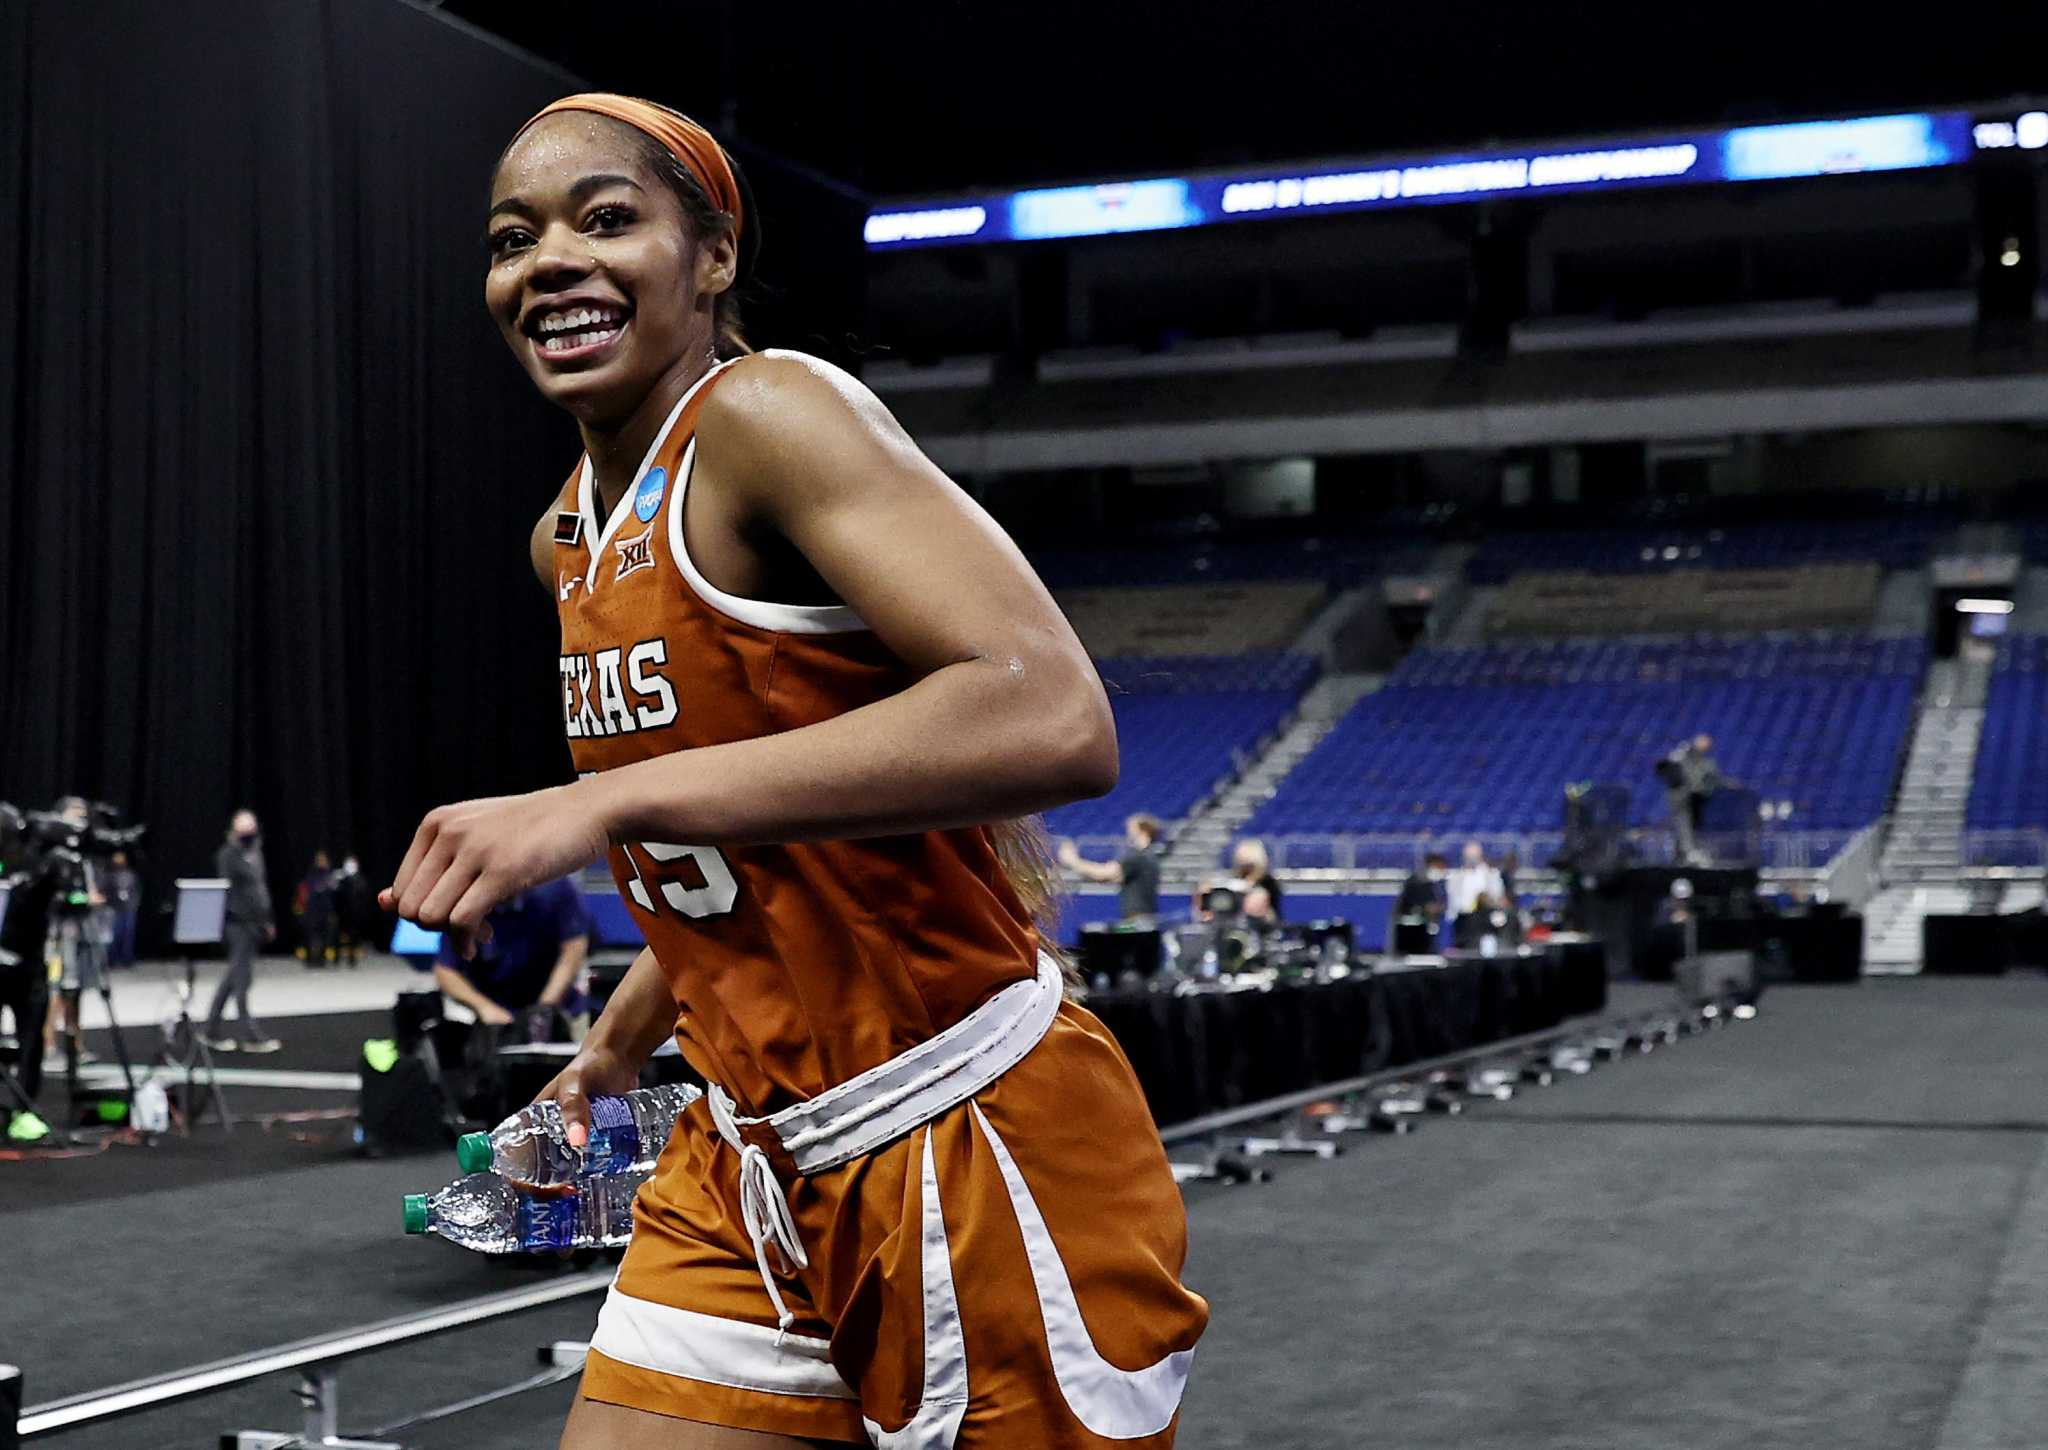 2021 WNBA Draft brought shock and thrill Thursday night, here's where 10 of the best players landed